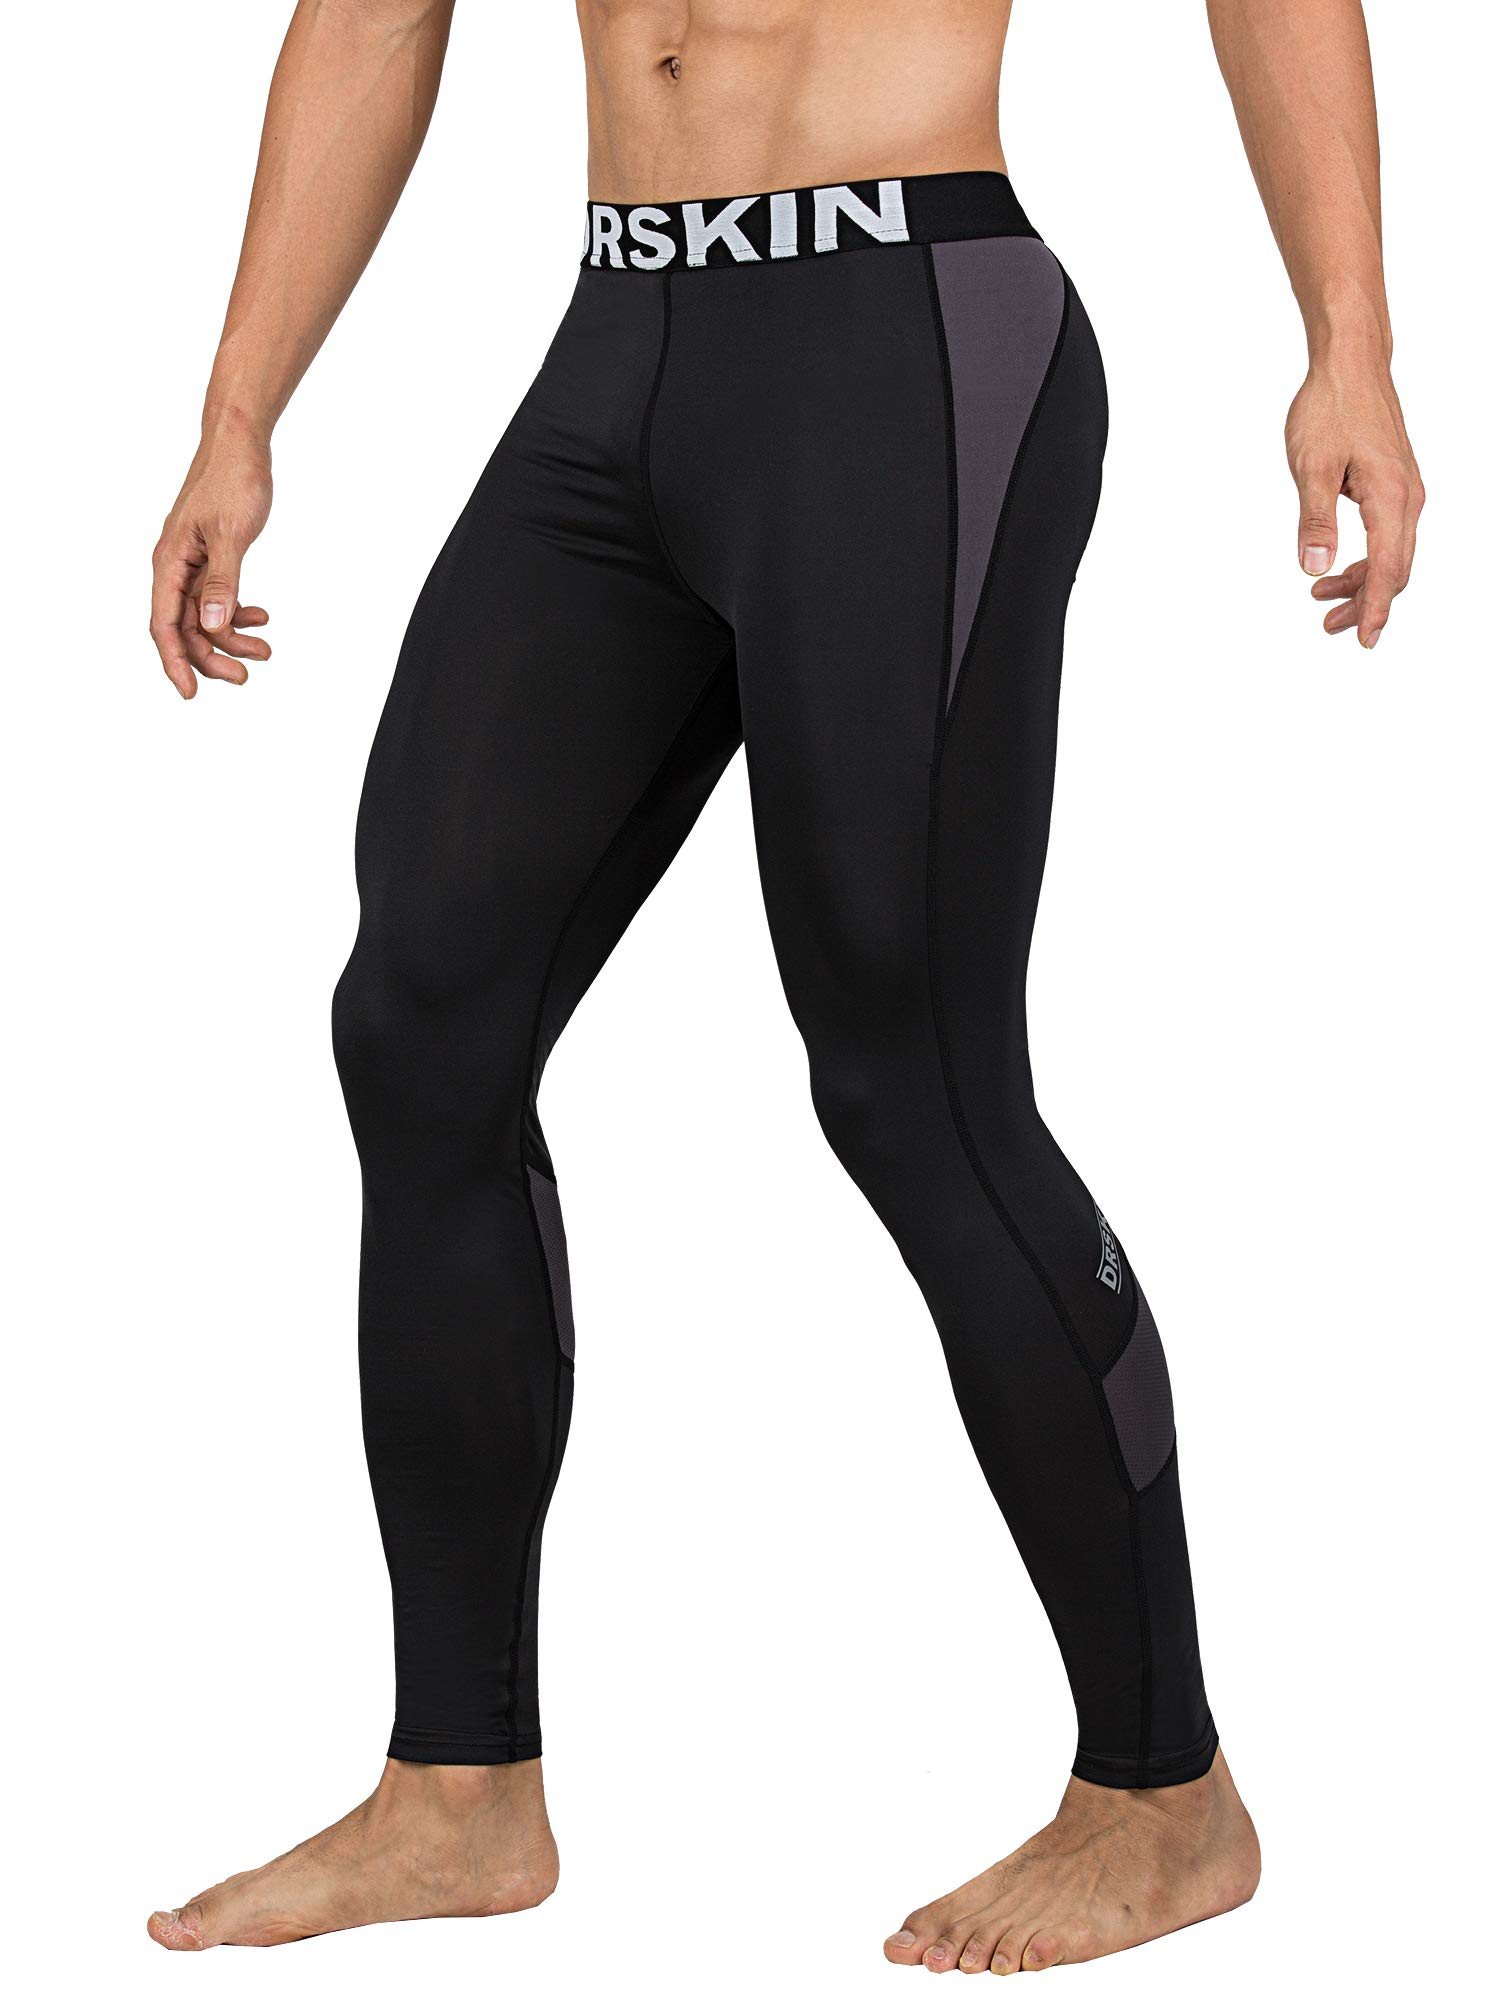 DRSKIN 1~3 Pack Men's Compression Dry Cool Sports Tights Pants Baselayer Running Leggings Yoga (Packs of 1, 2, or 3 Deals) (Came B-G01, S)